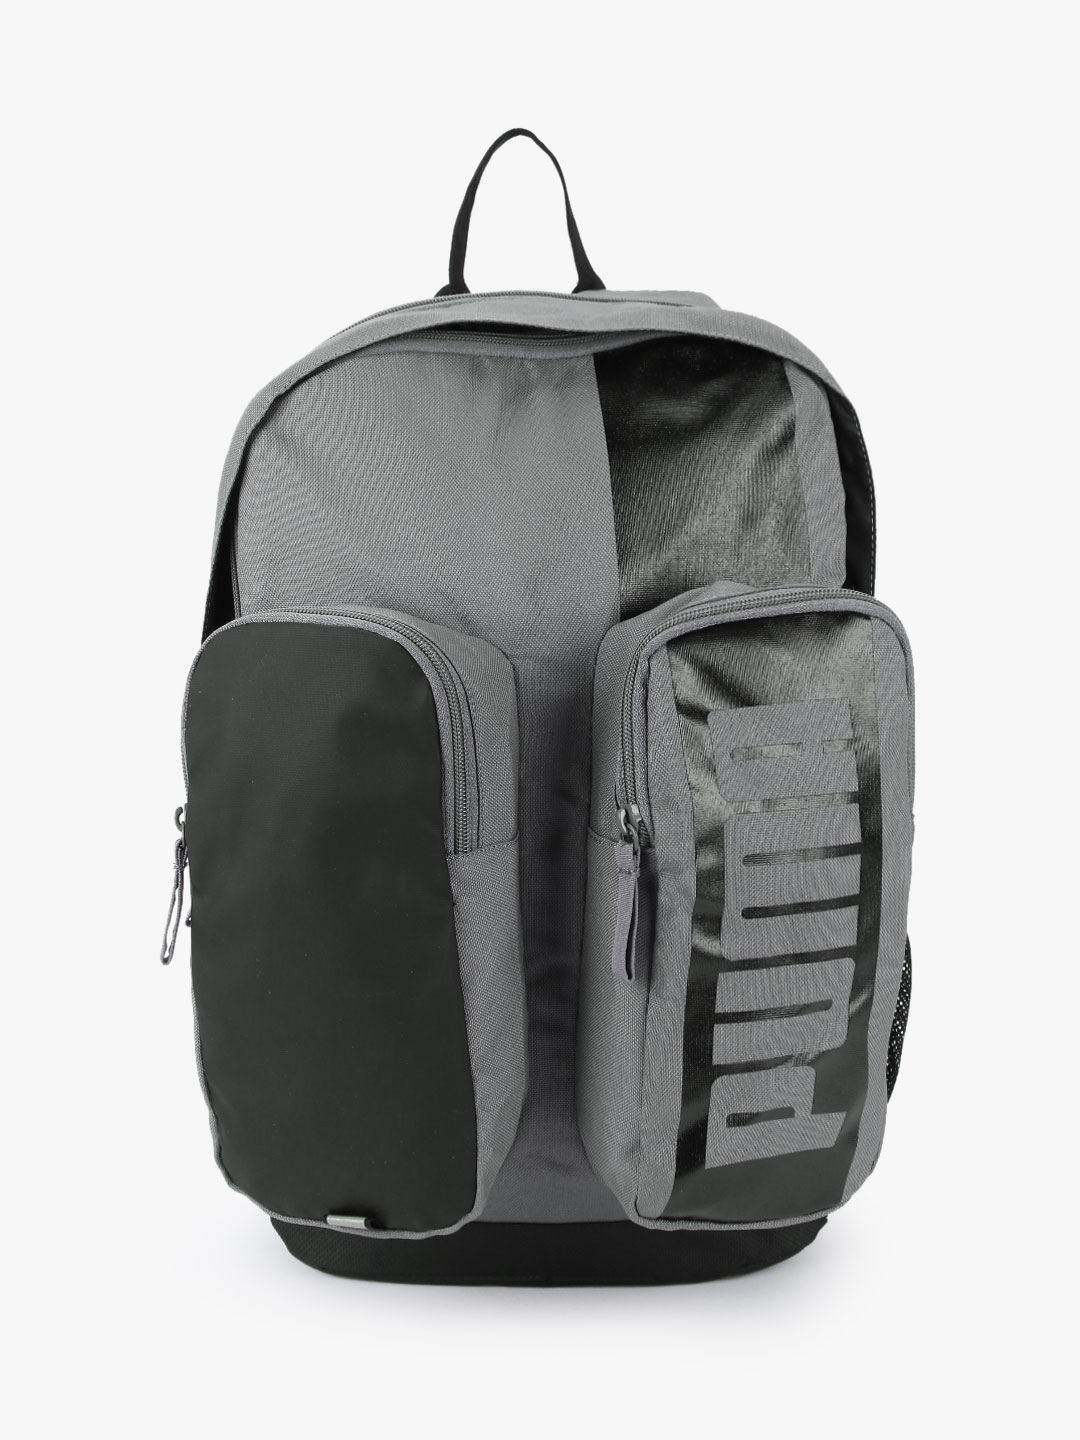 Puma Grey Deck Backpack II 1